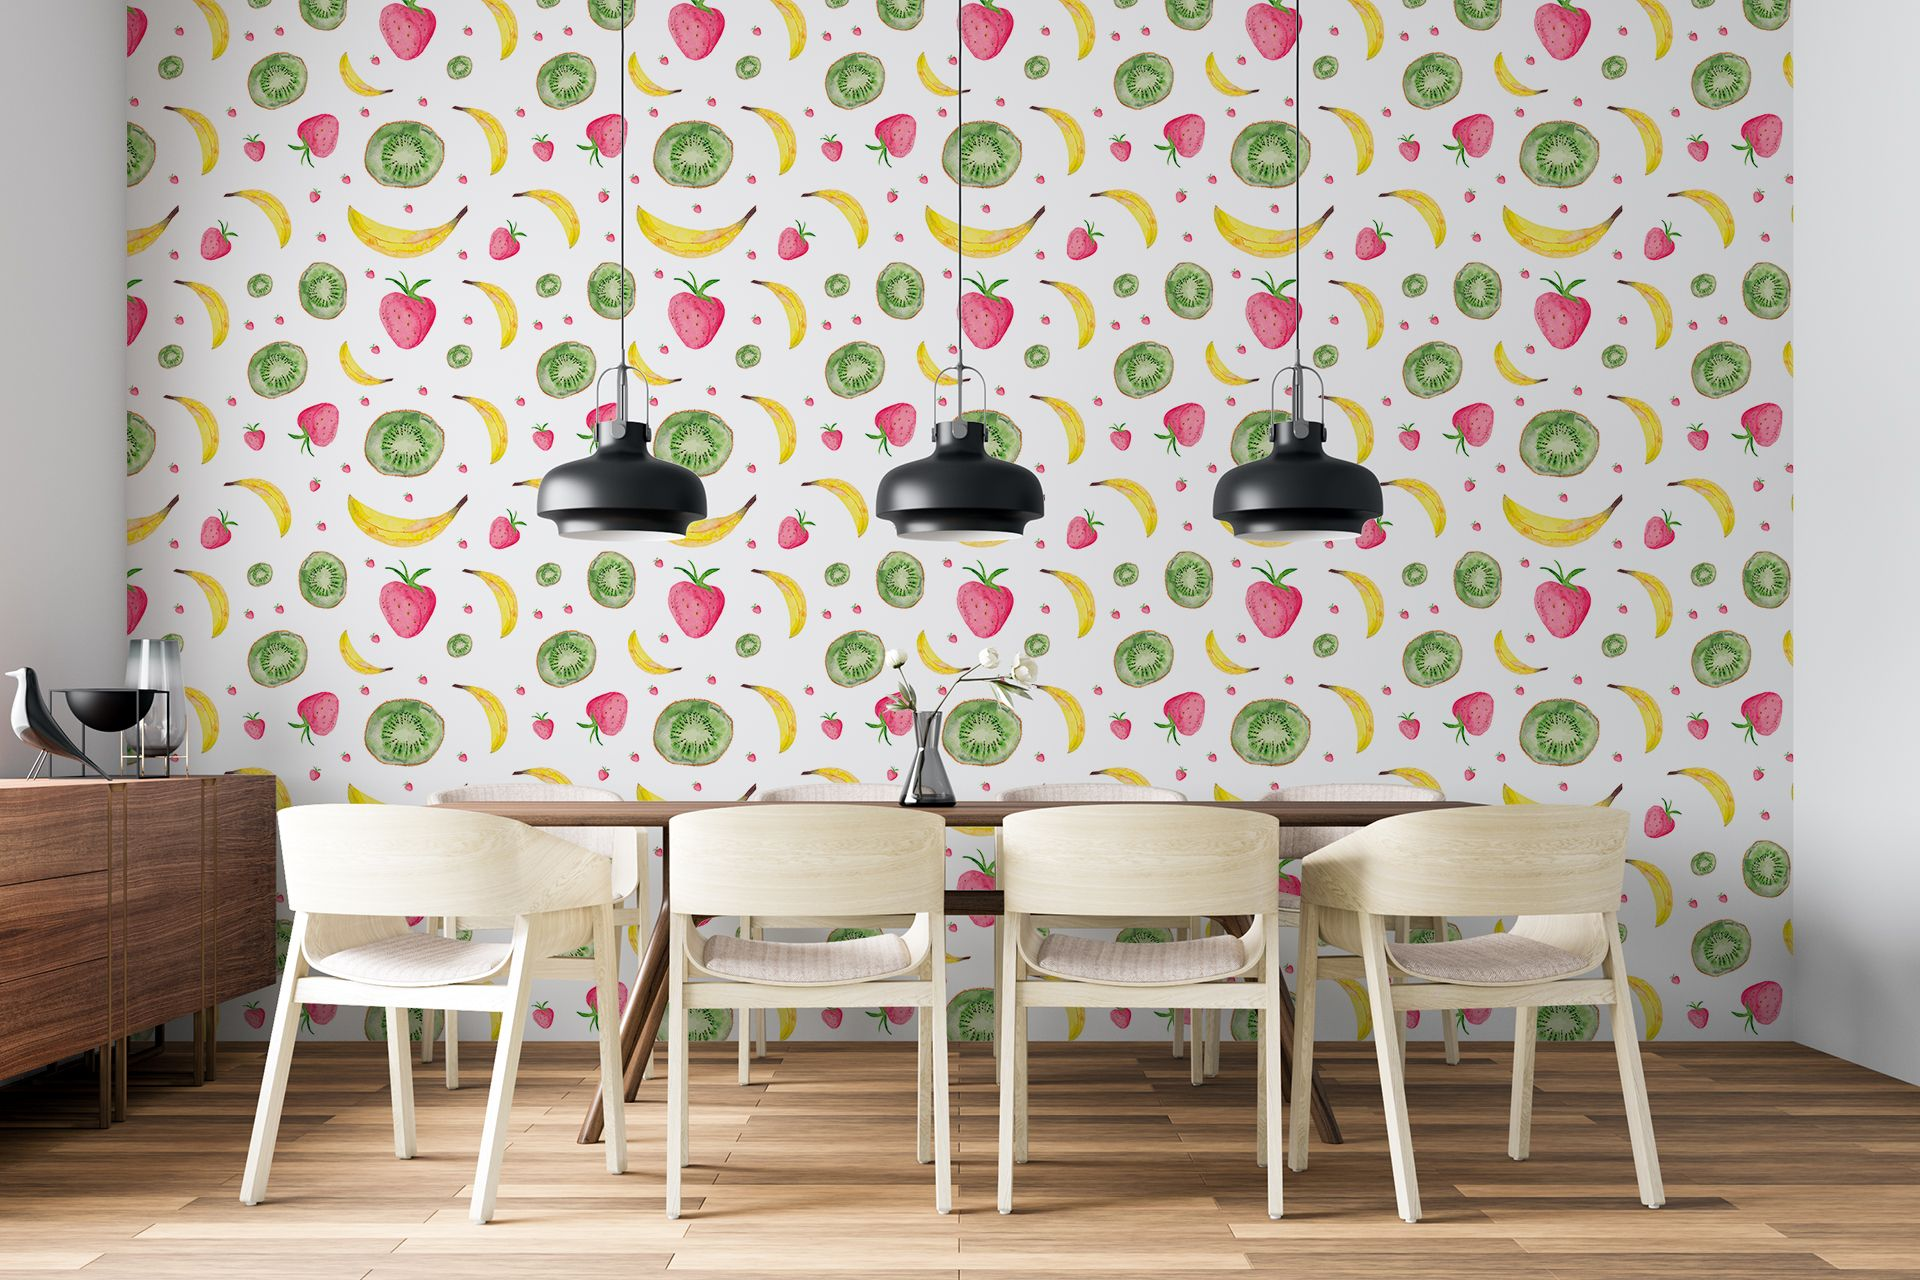 Get these non-toxic, Adhesive, Handmade Removable Wallpaper. Environmentally conscious WallaWall Wallpaper, it will give the rooms in your home a colorful meaning. You can get these by clicking the pin.😎👀💯😎🙌 #wallpaper #wallpapers #interiordesign #d #wallpapermurah #wallpaperdinding #homedecor #art #design #wallpapersticker #interior #love #photography #wallpaperdecor #wallsticker #like #anime #walldecor #dekorasirumah #aesthetic #instagram #follow #decor #wallcovering #wallpaperjakarta #n